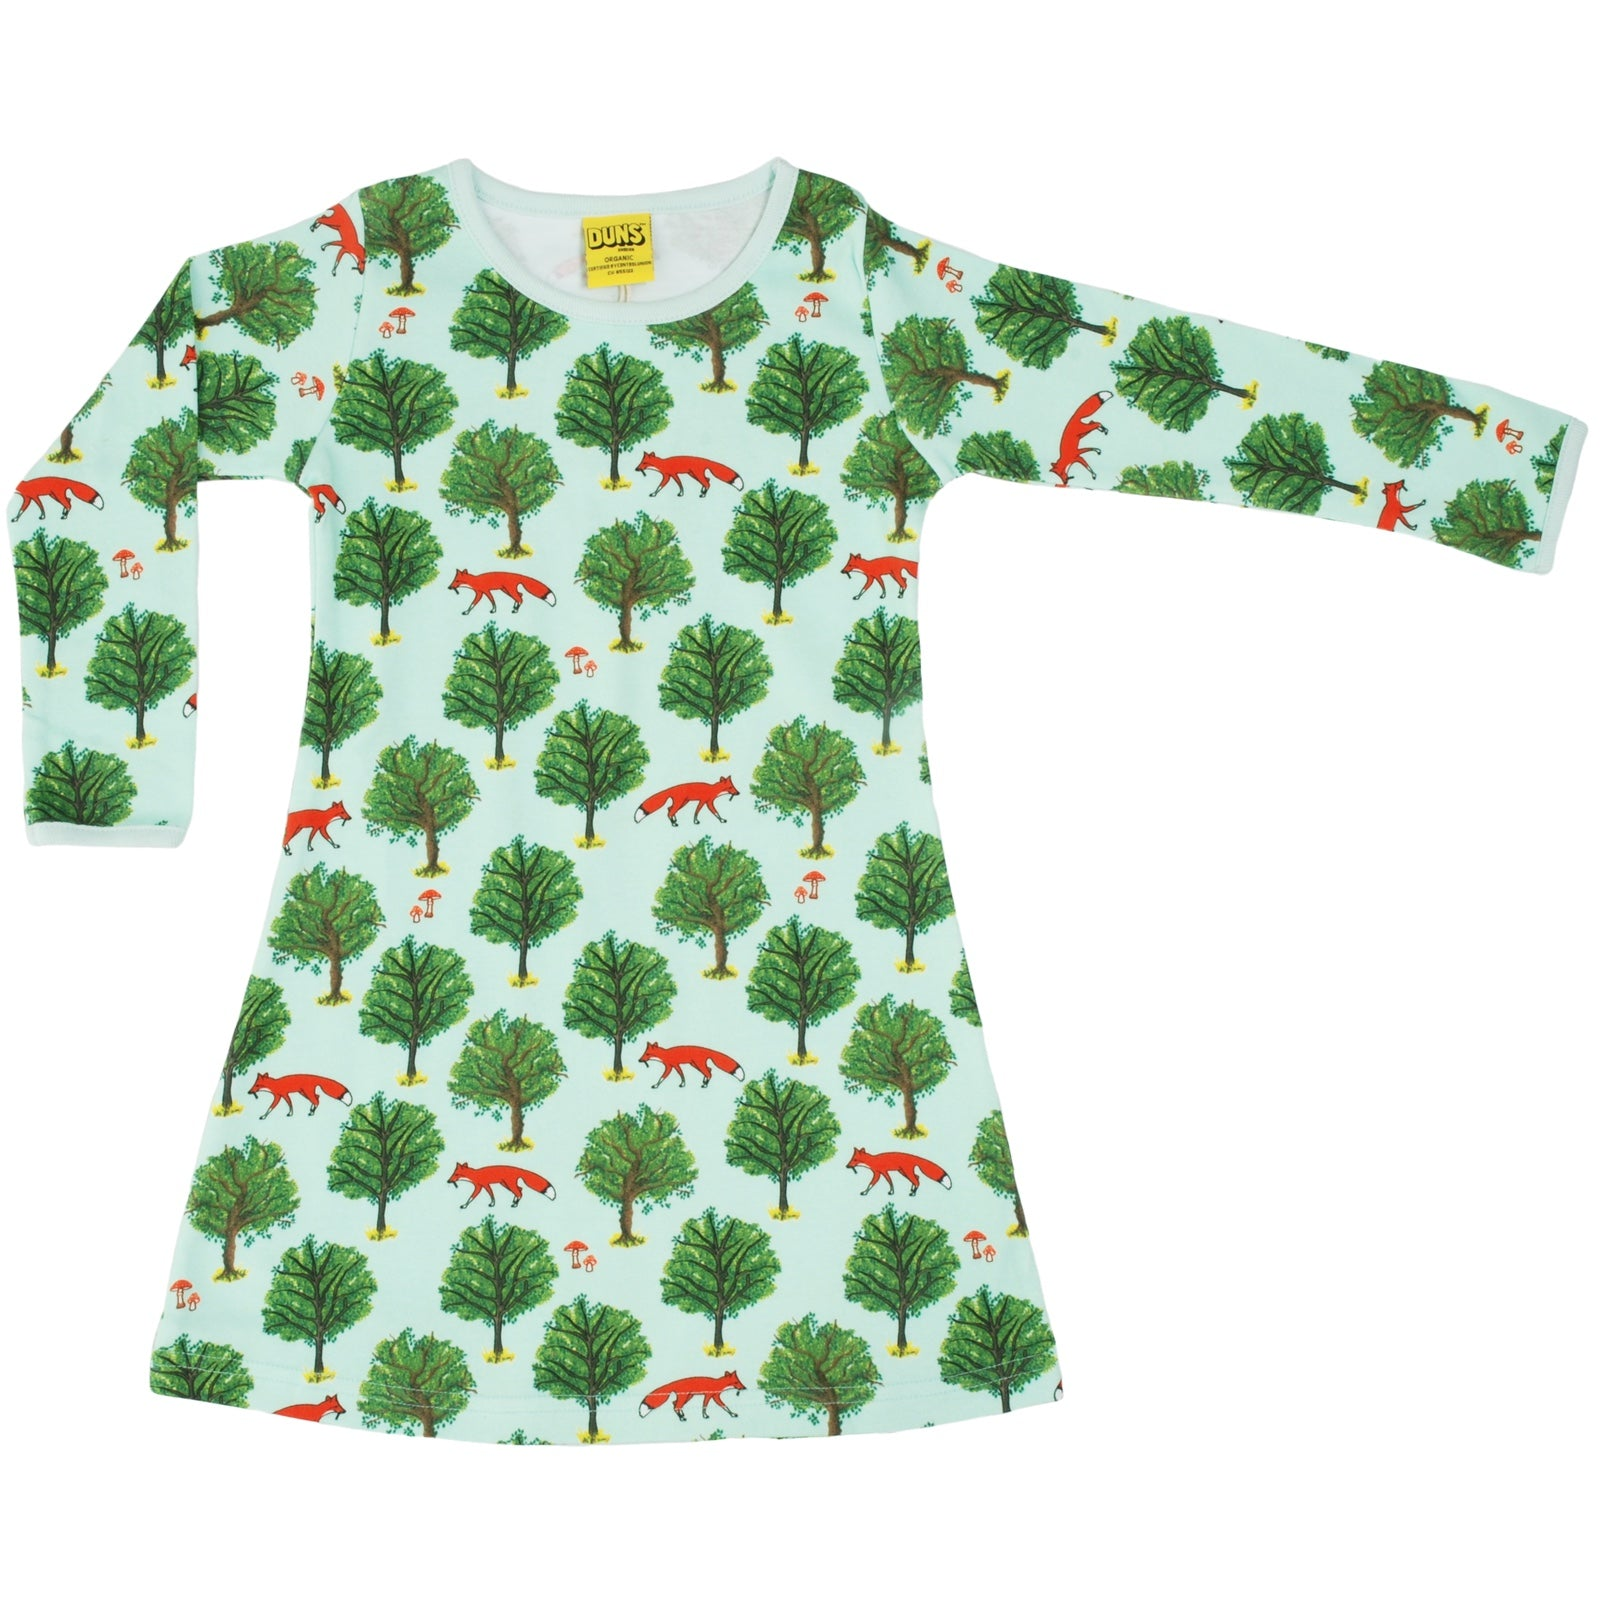 DUNS Organic Fox & Tree Dress - Mint